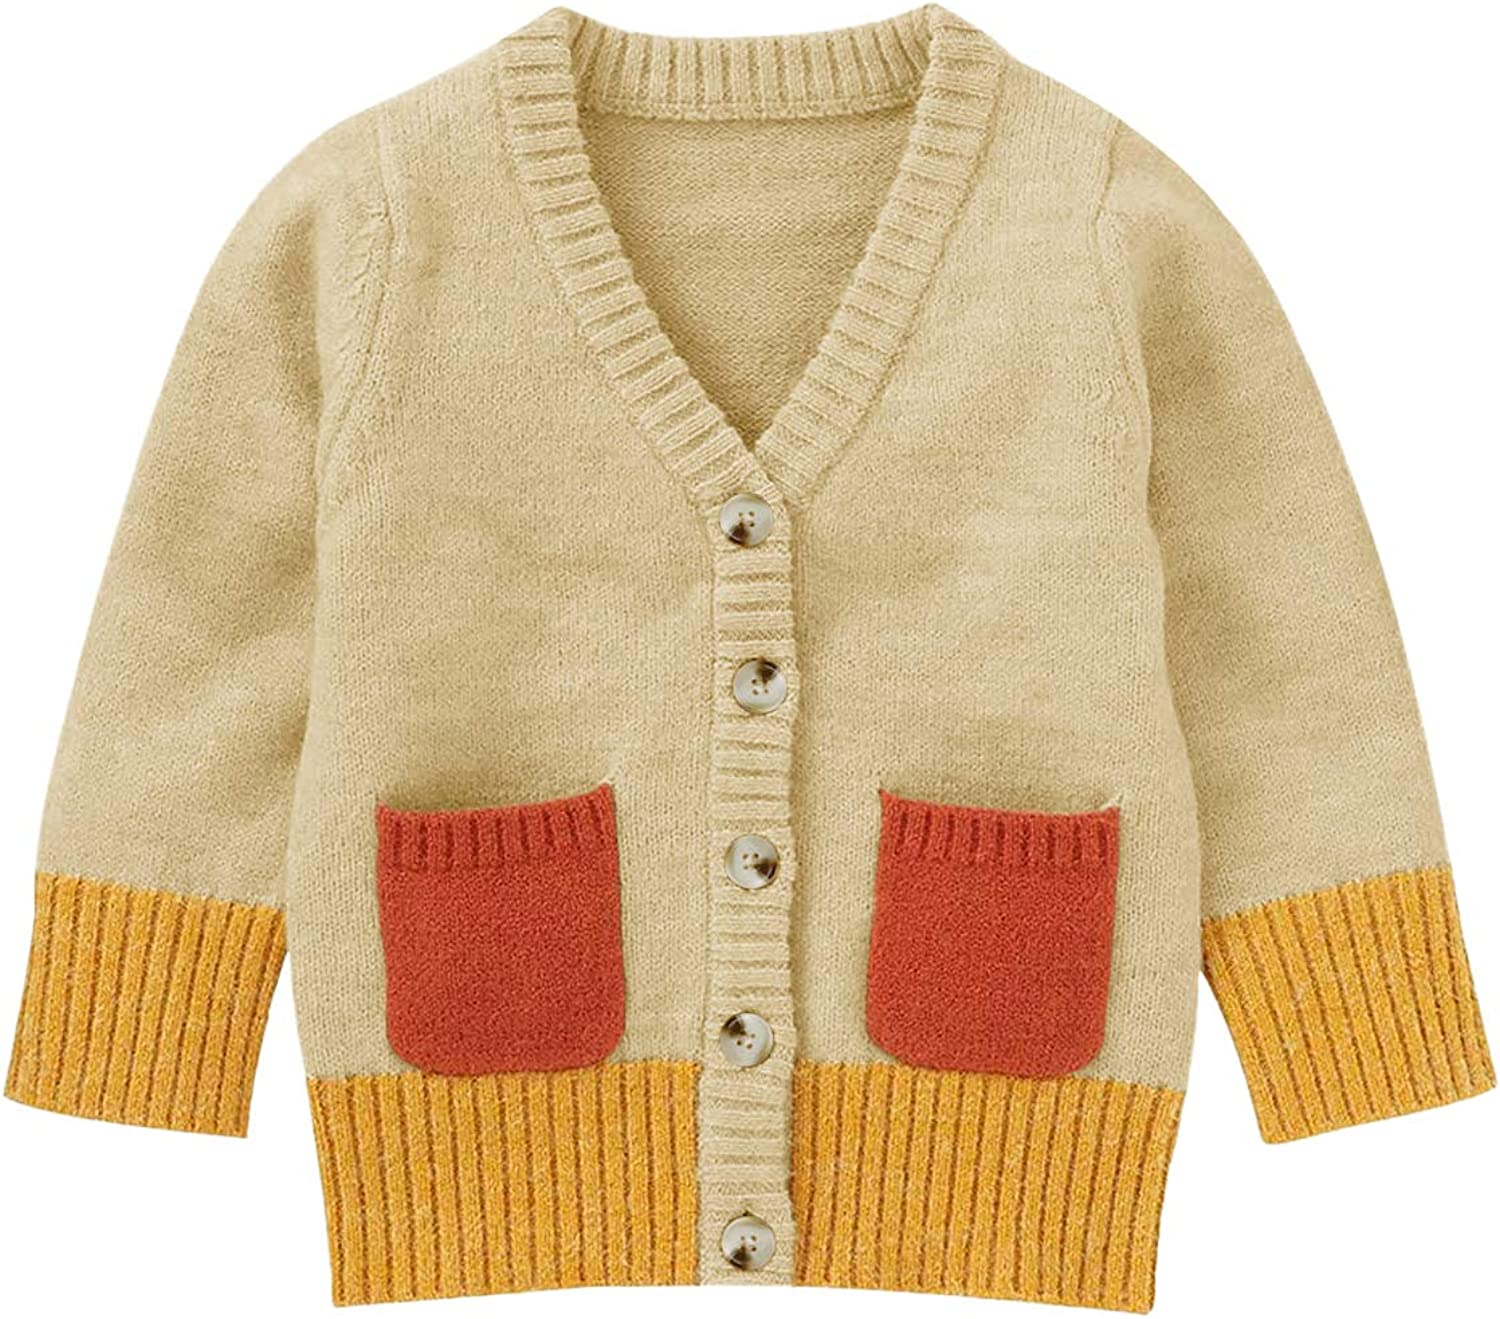 Bbalizko Toddler Baby Boy Girl Knitted Sweater Striped Cardigan Long Sleeve Button Down Coat Fall Winter Outwear